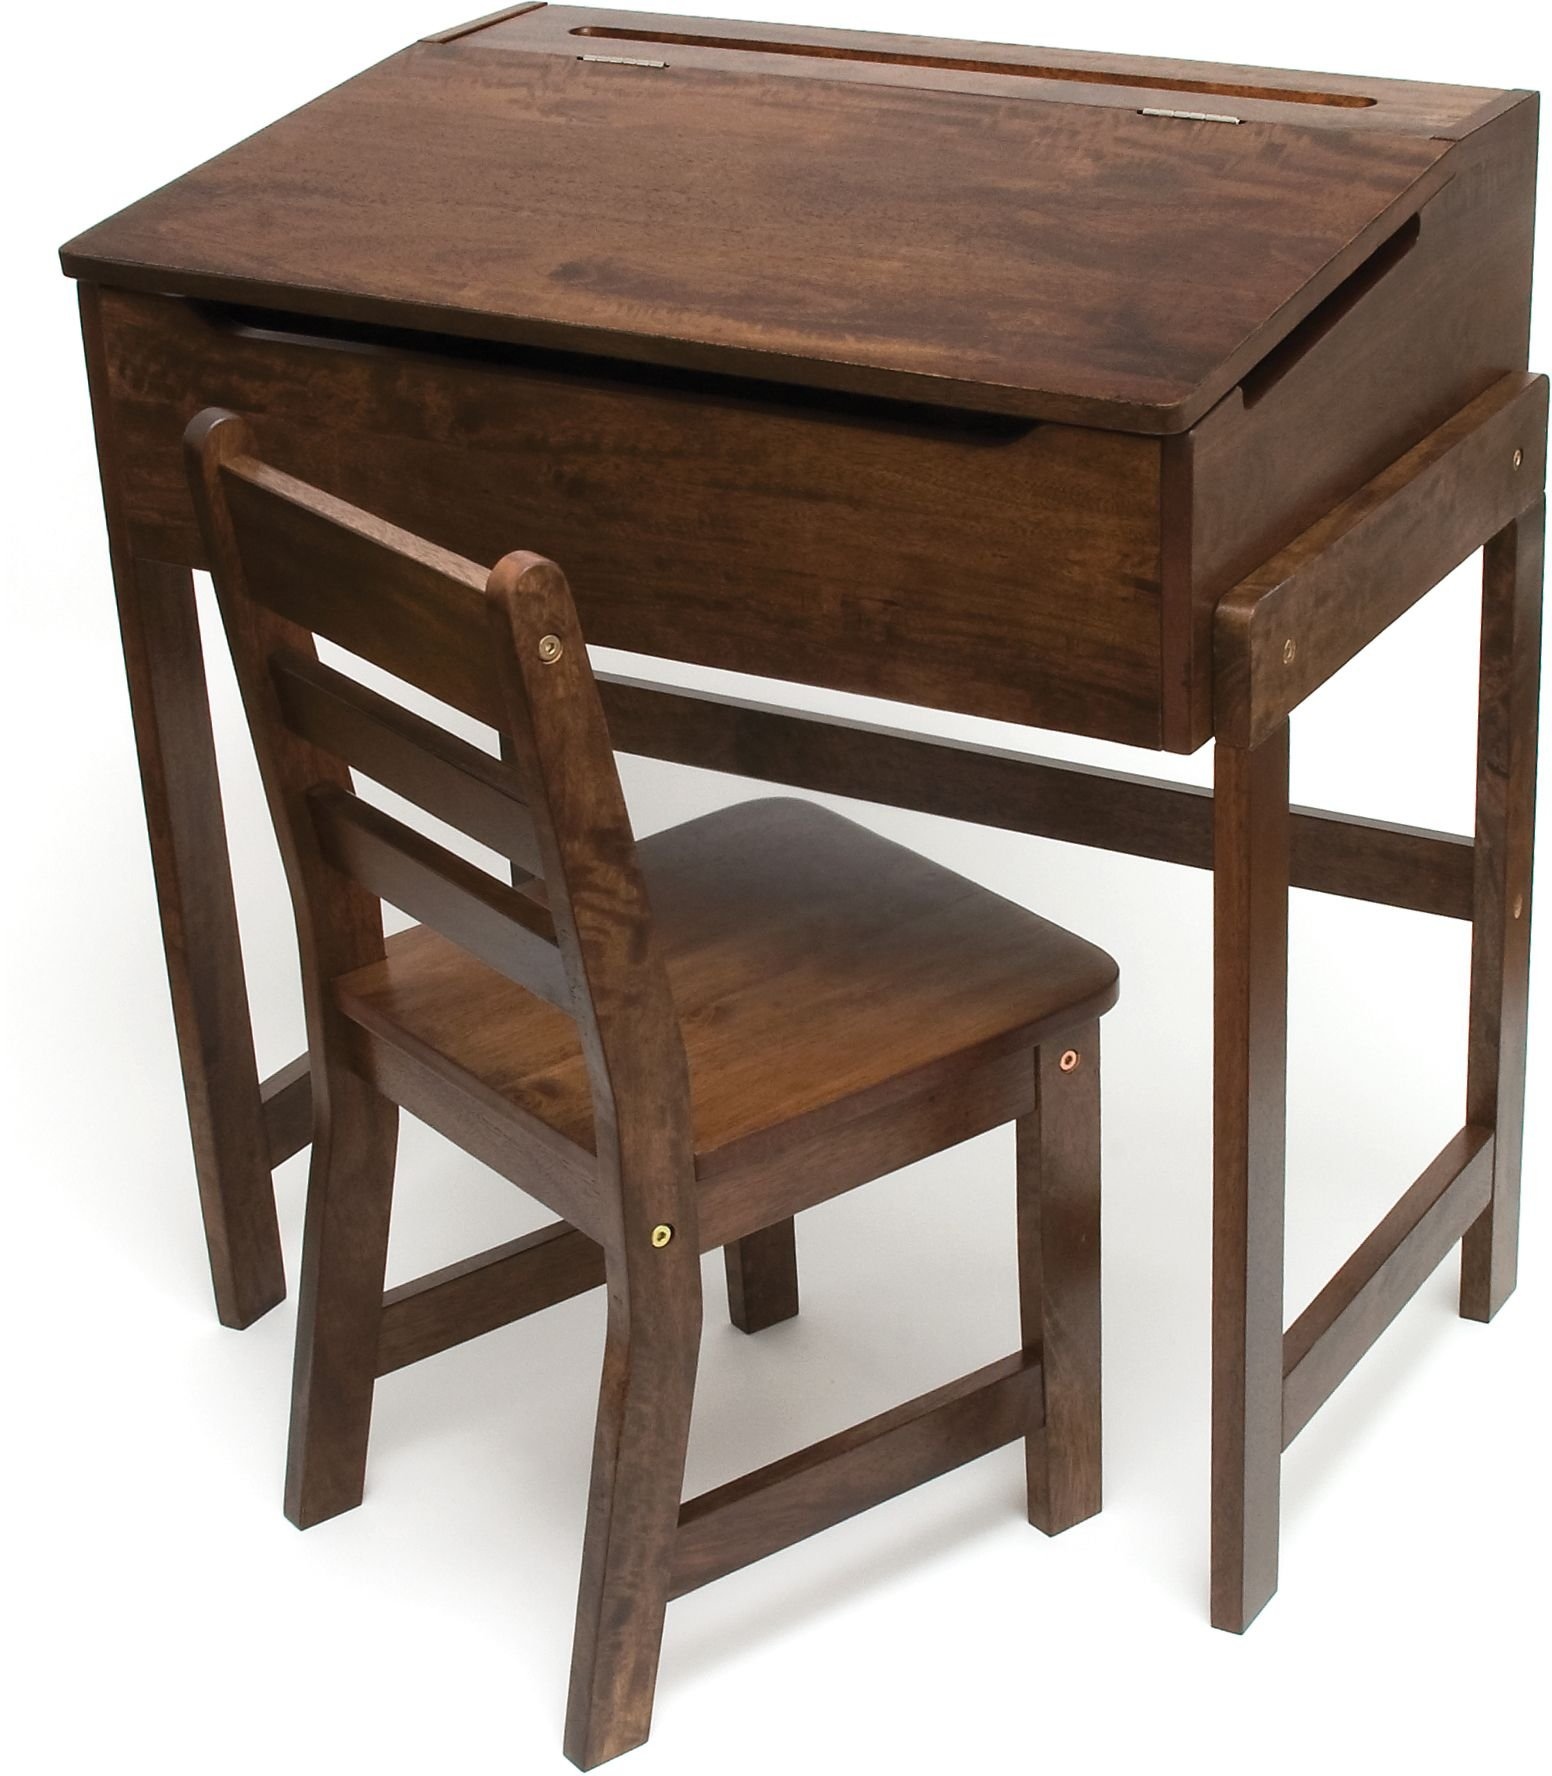 Lipper International 564WN Child's Slanted Top Desk & Chair, Walnut Finish by Lipper International